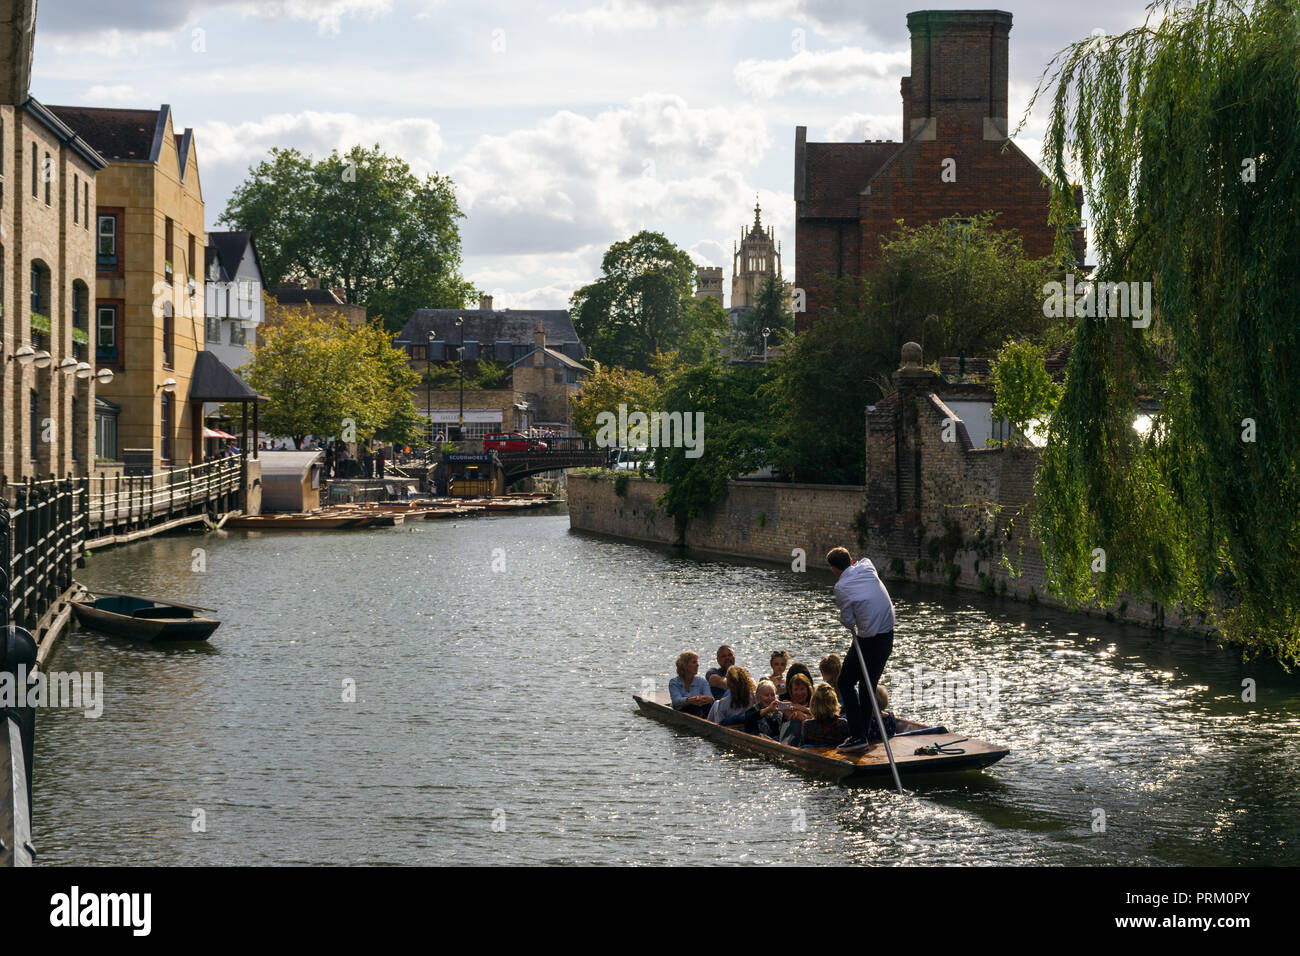 A punt boat with several people aboard on the river Cam heading to Magdalene Bridge on a sunny Summer afternoon, Cambridge, UK - Stock Image